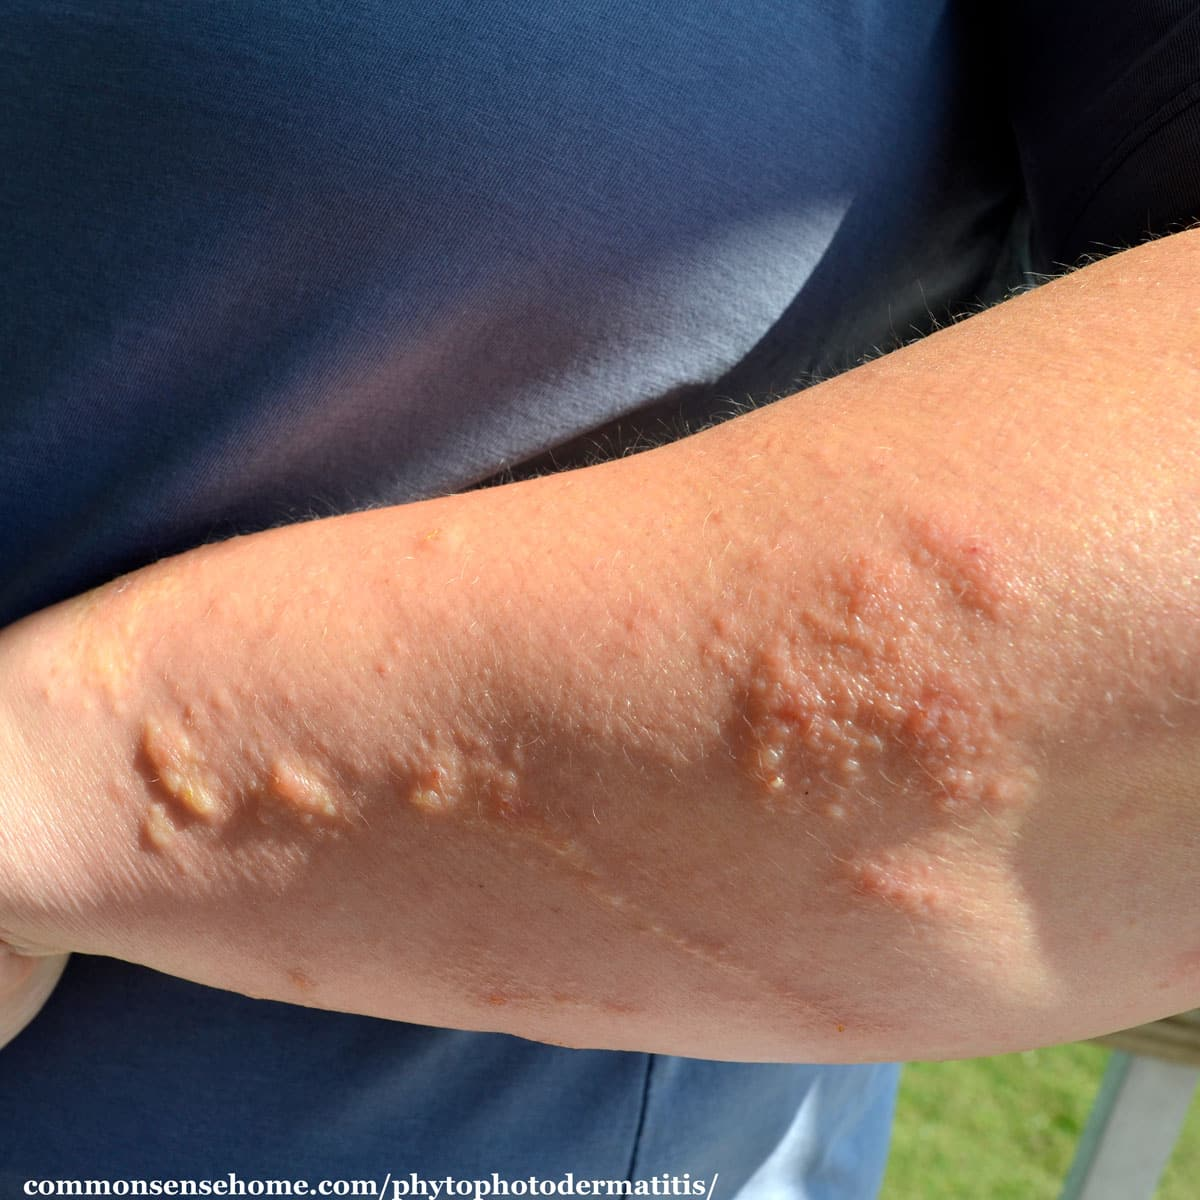 phytophtodermatitis on arm